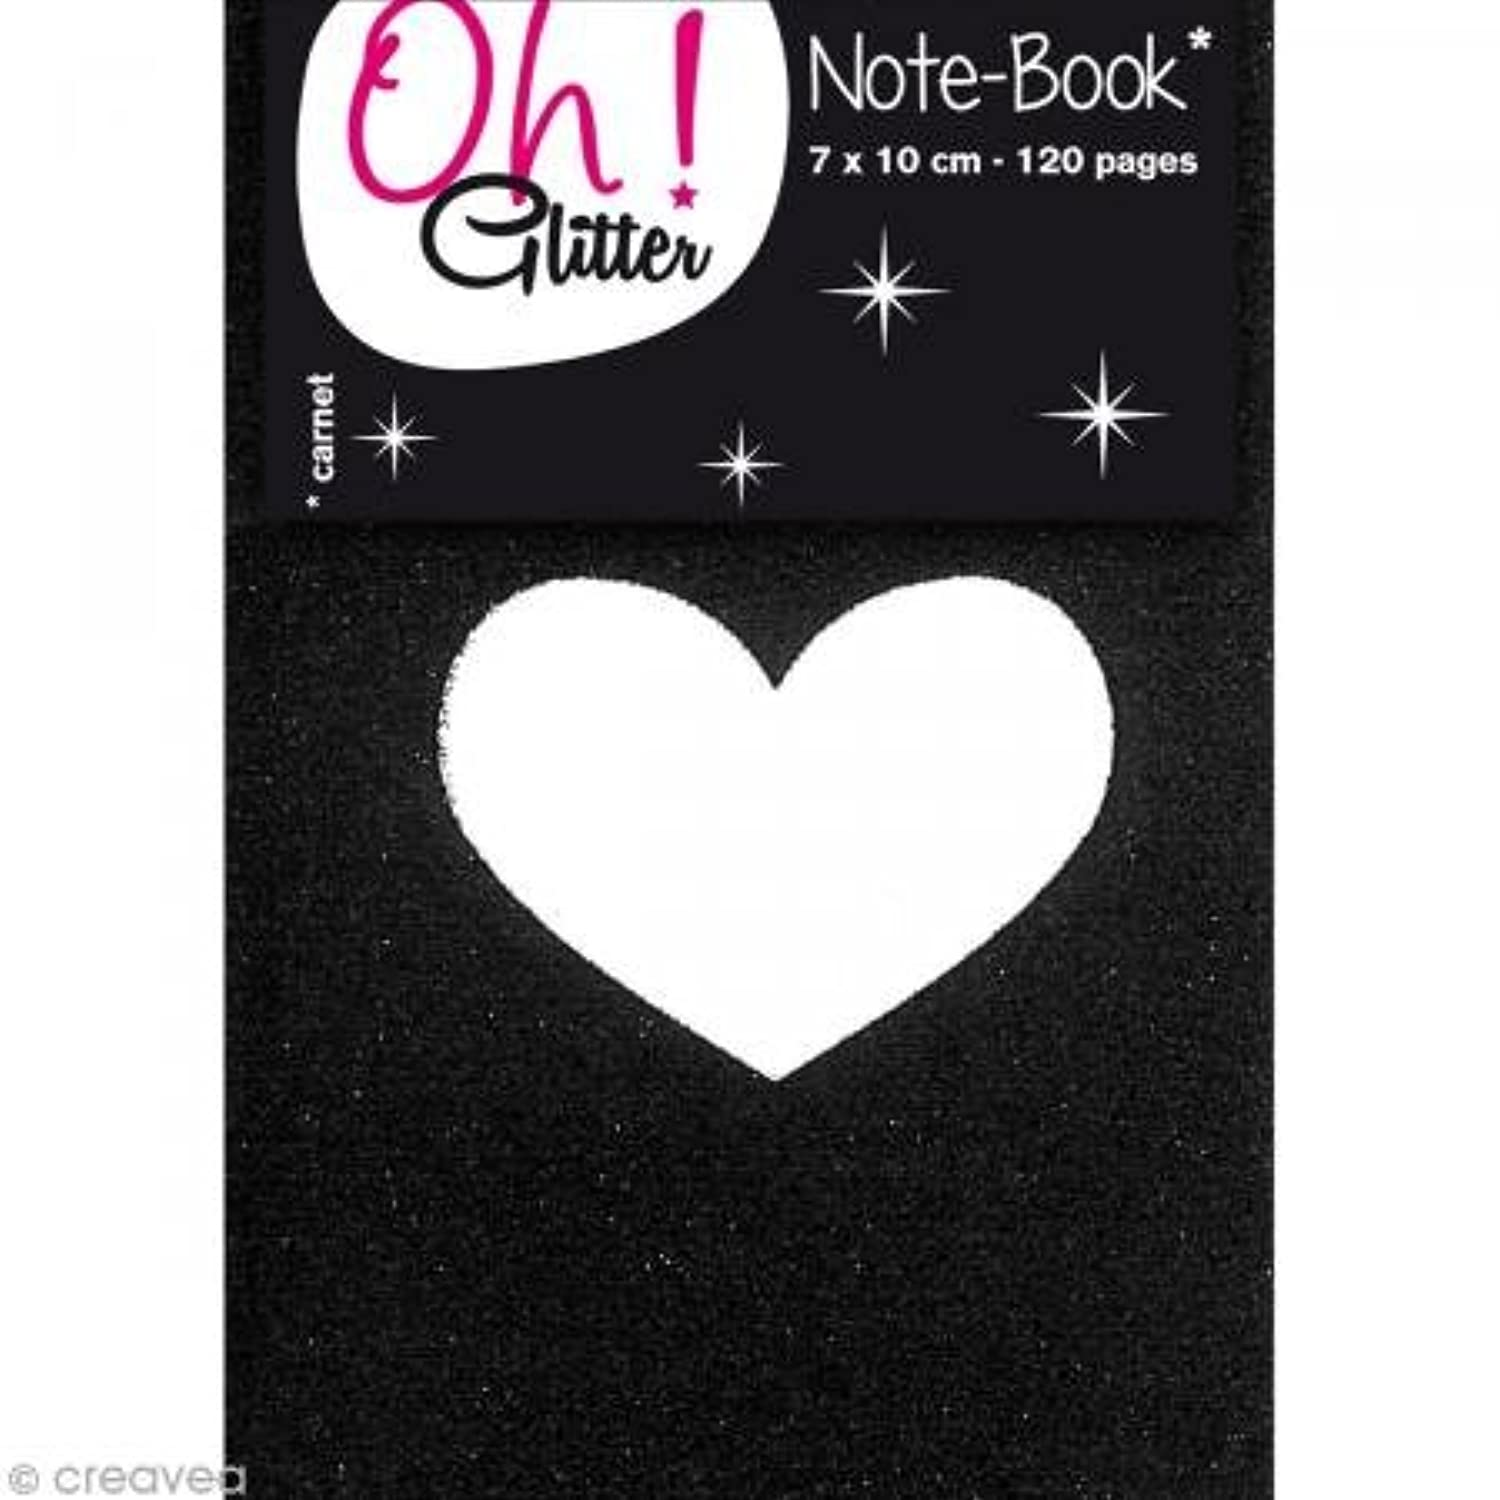 Oh ! Glitter Shimmer Mini Notebook, Paper, 7?x 10?x 1?cm Black